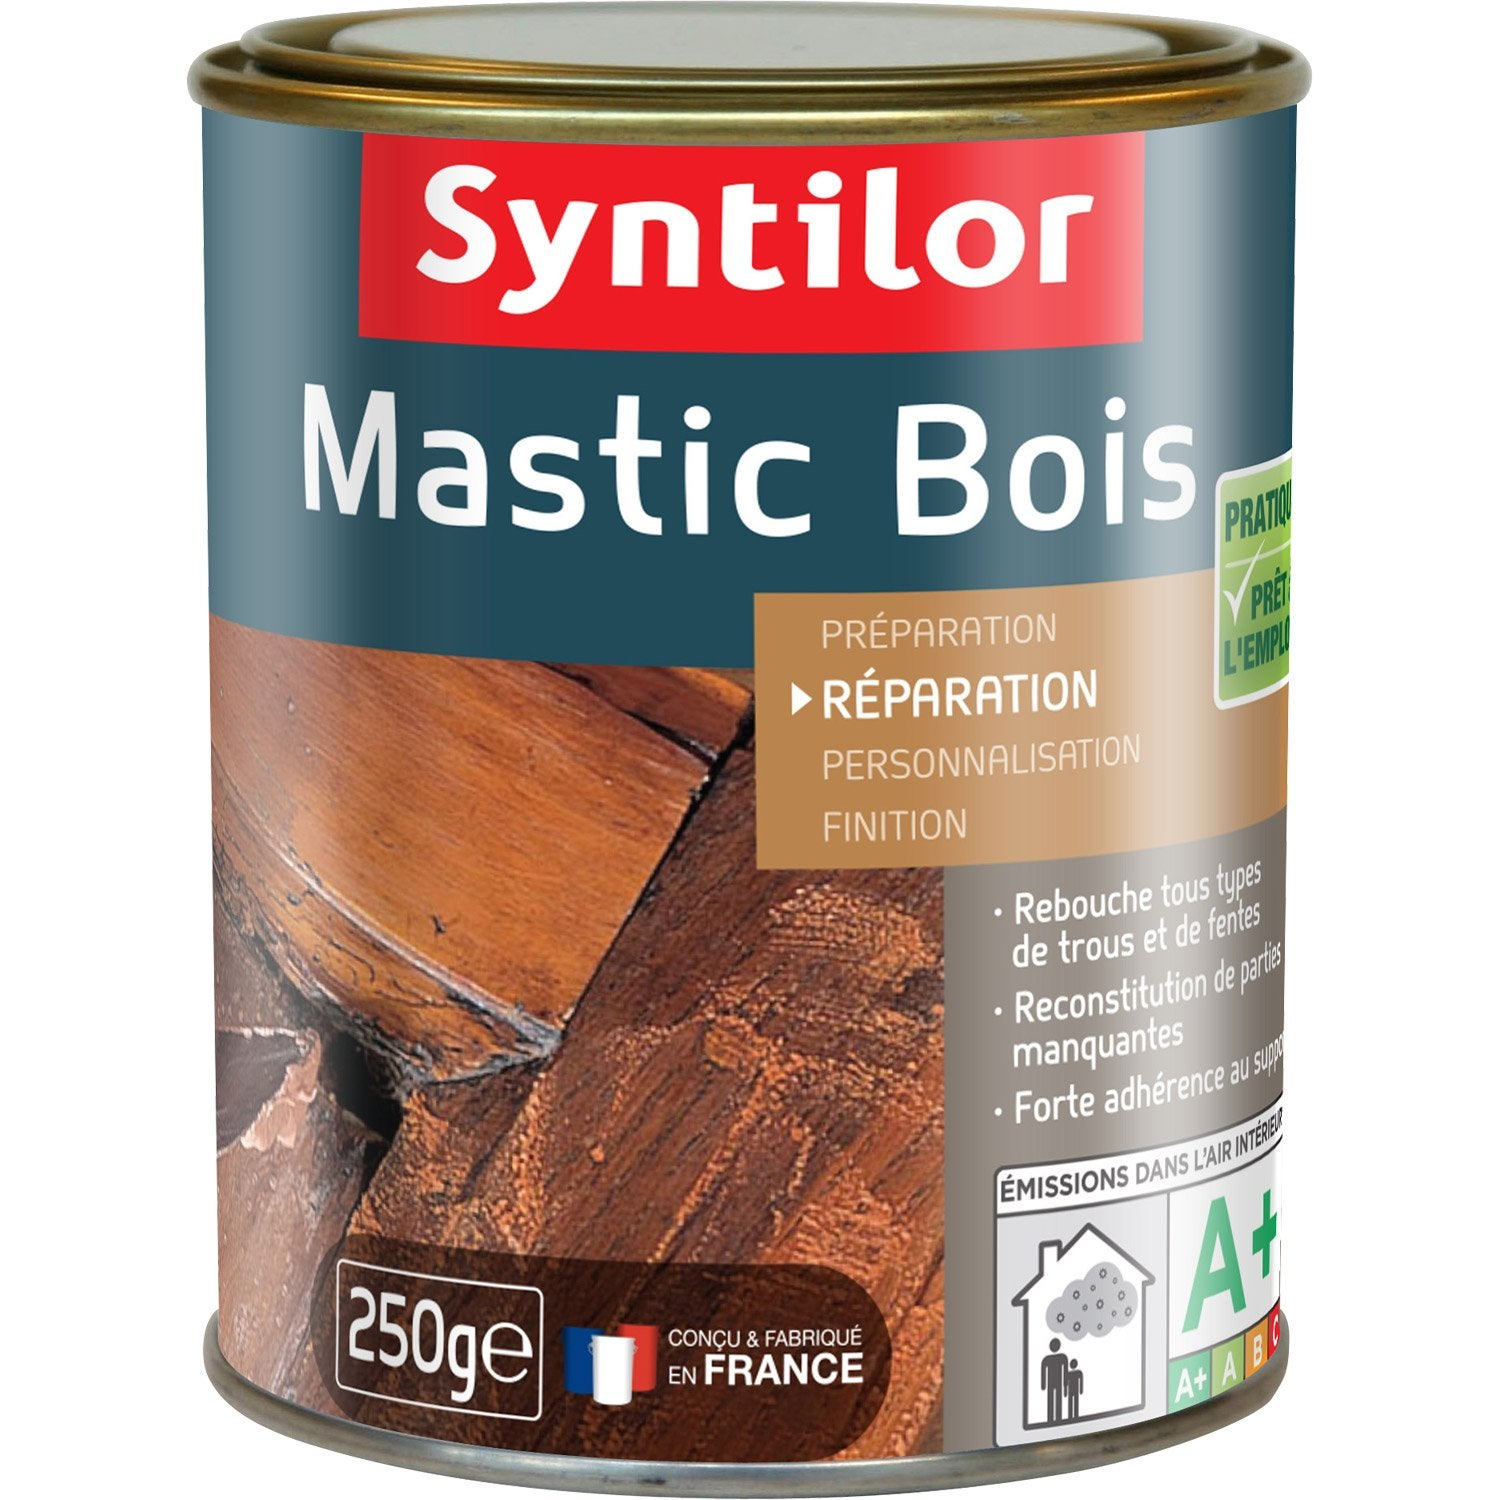 mastic bois de rebouchage syntilor bois clair 250 g leroy merlin. Black Bedroom Furniture Sets. Home Design Ideas